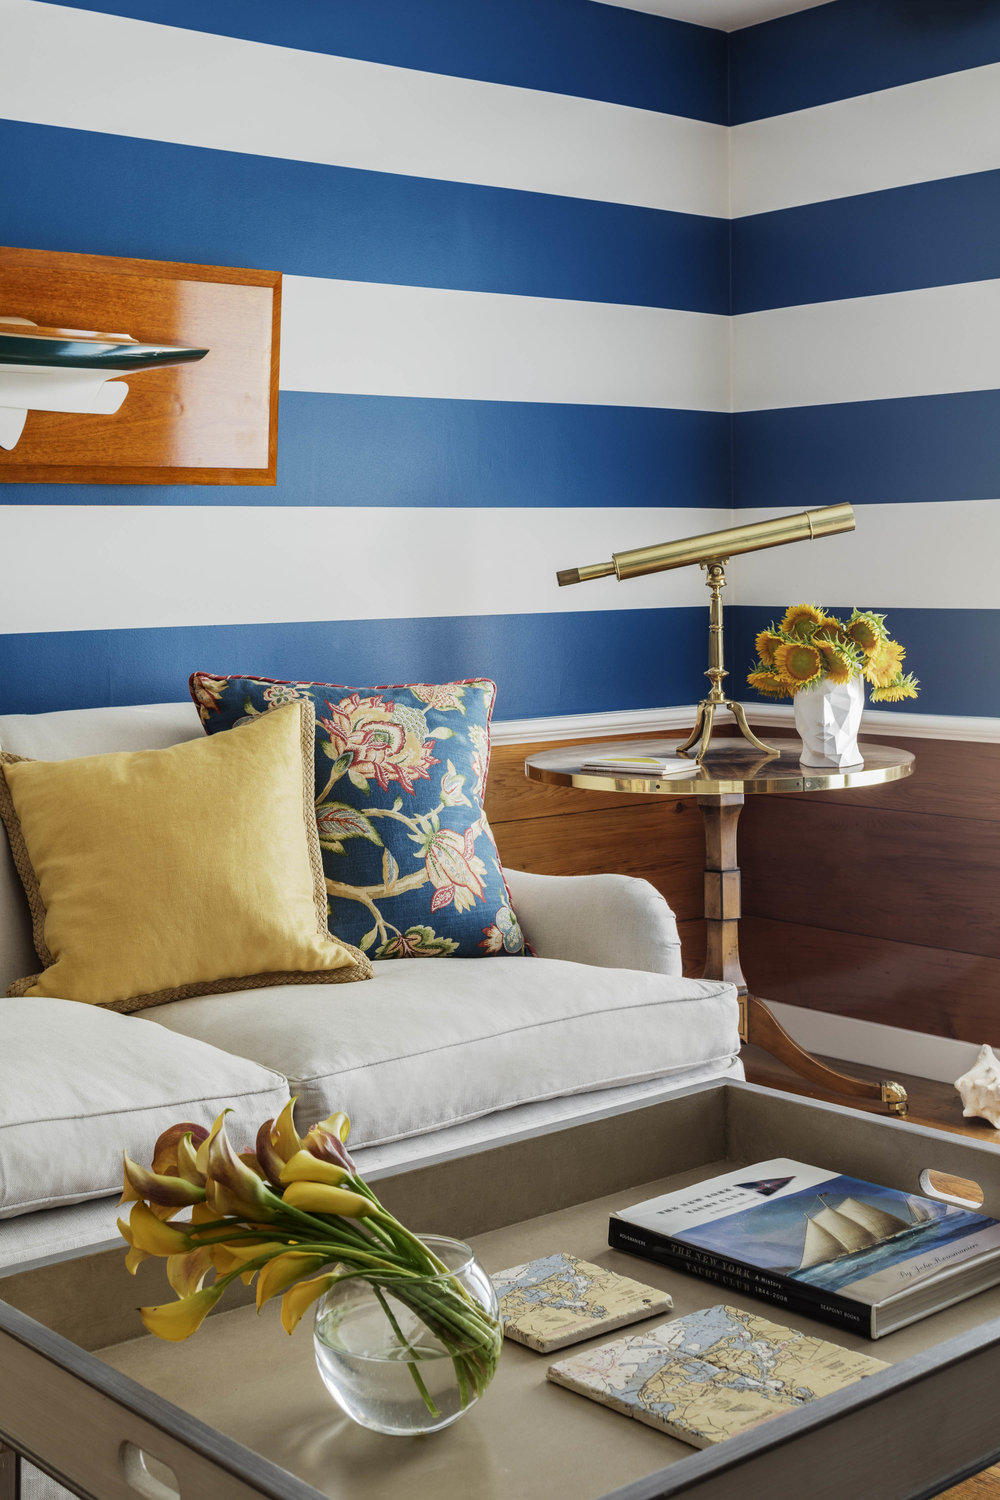 Sitting area with blue and white striped walls and classic looking glass on side table